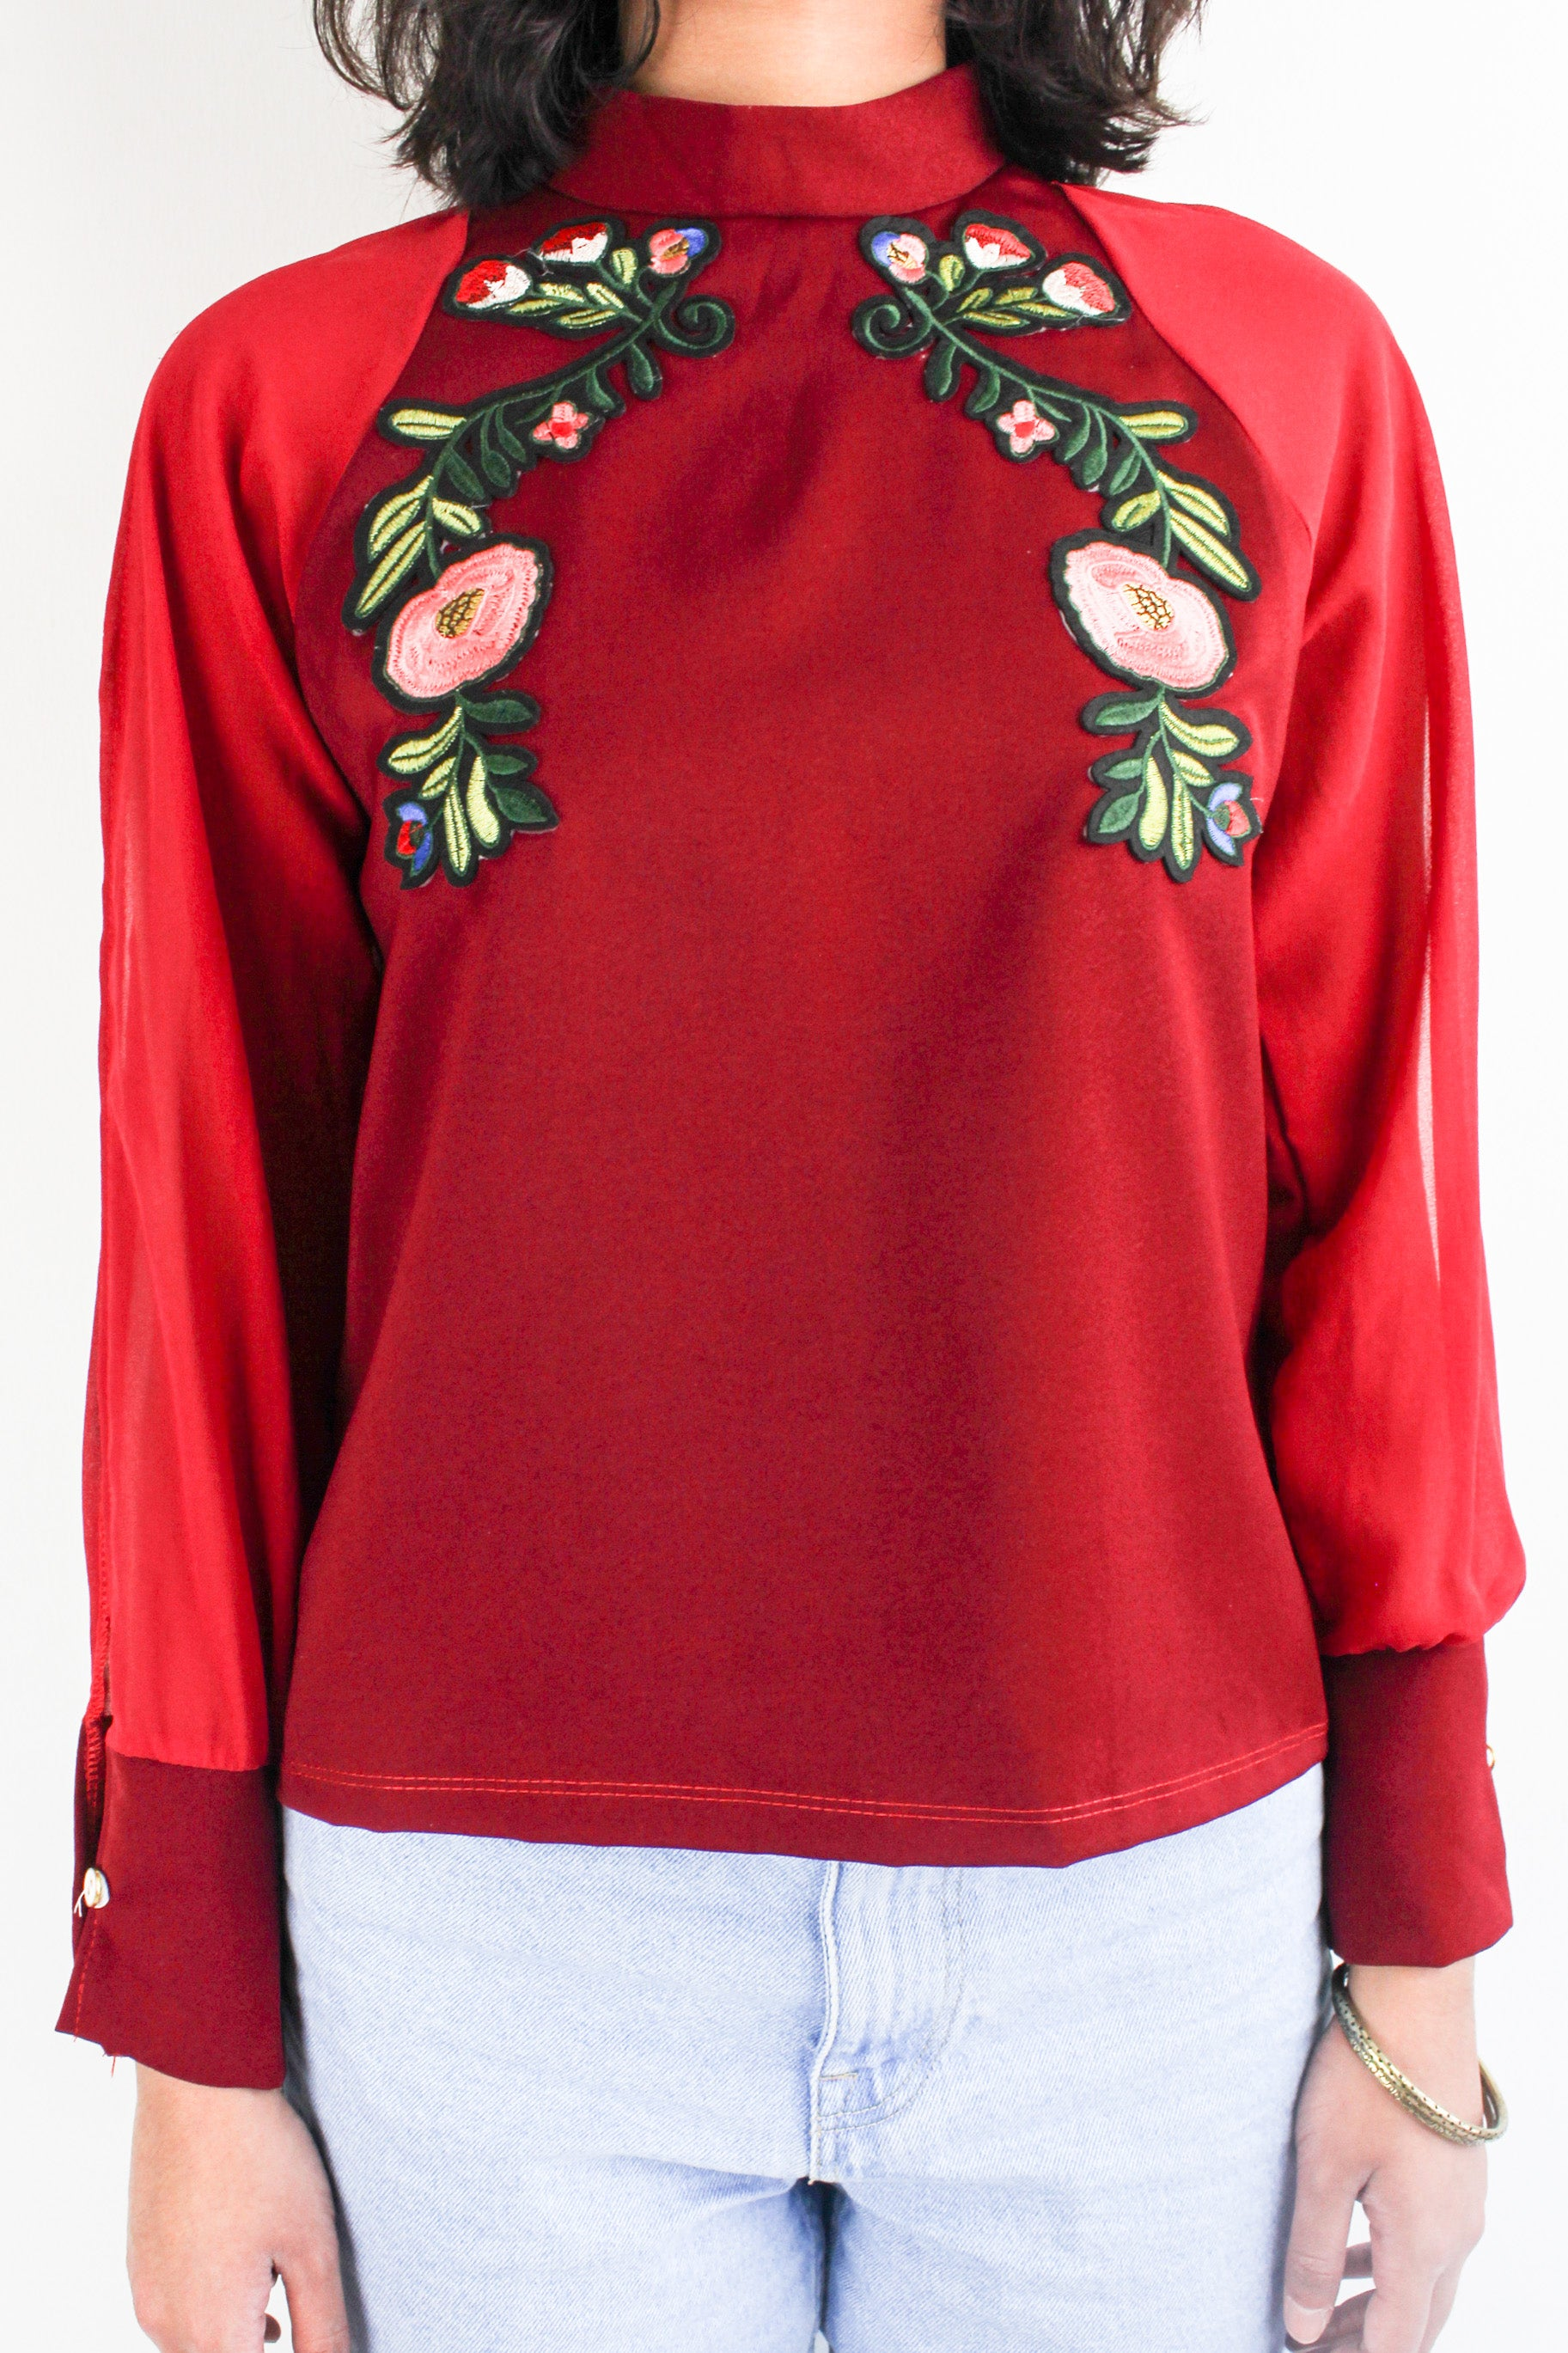 I've Got the Flower Embroidered Top in Wine Red